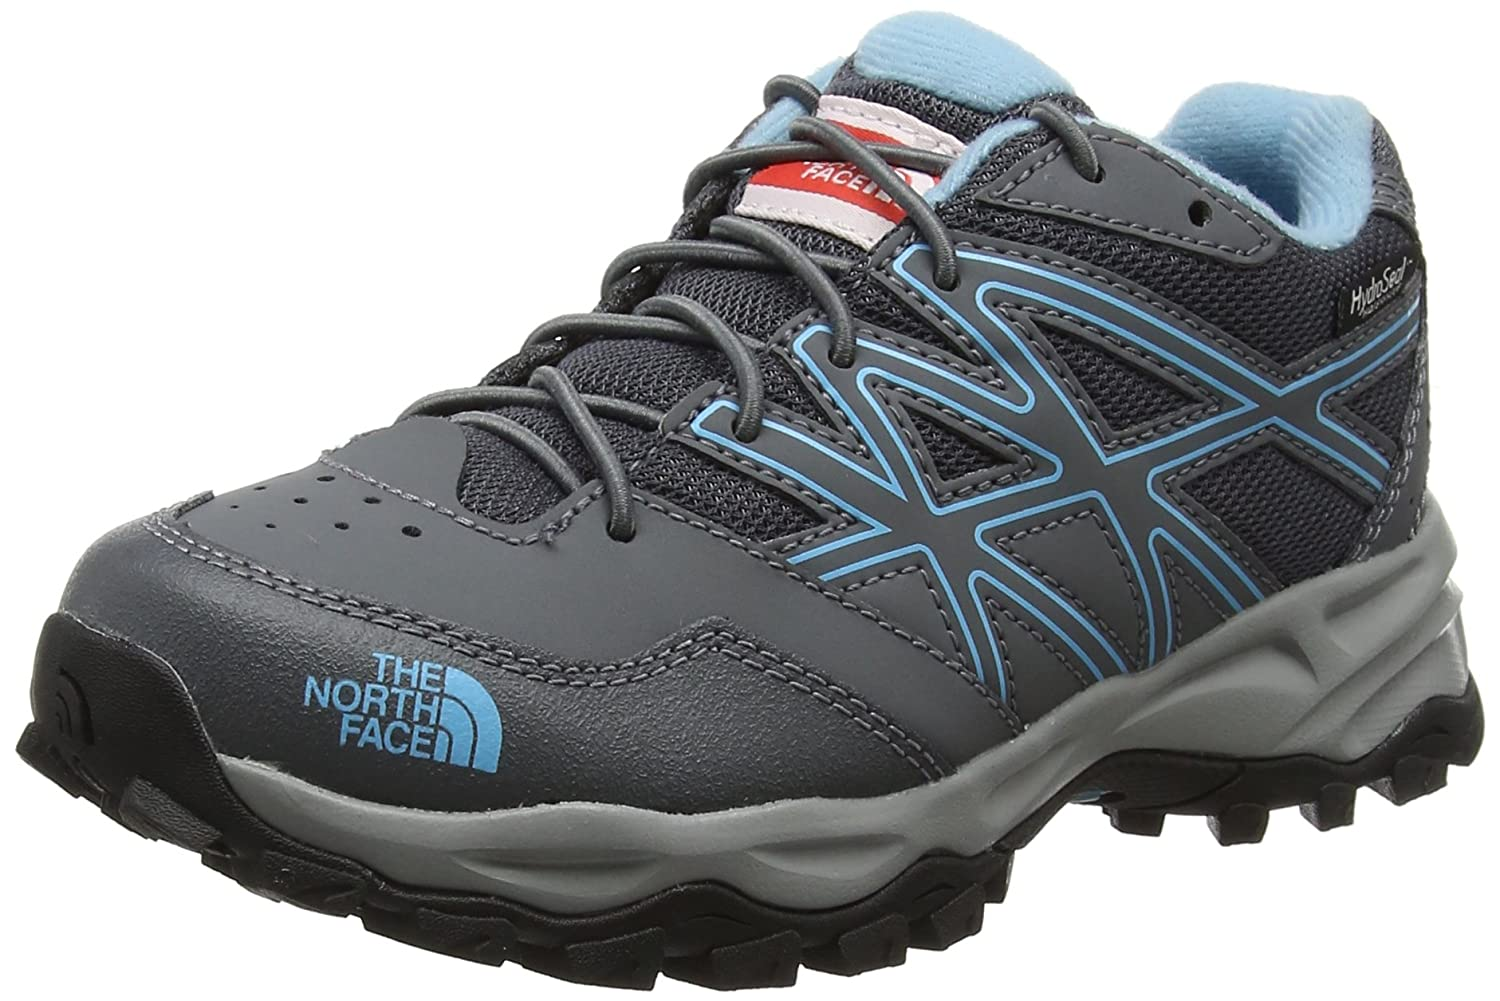 The North Face Hedgehog Hiker Waterproof a5537a2f955